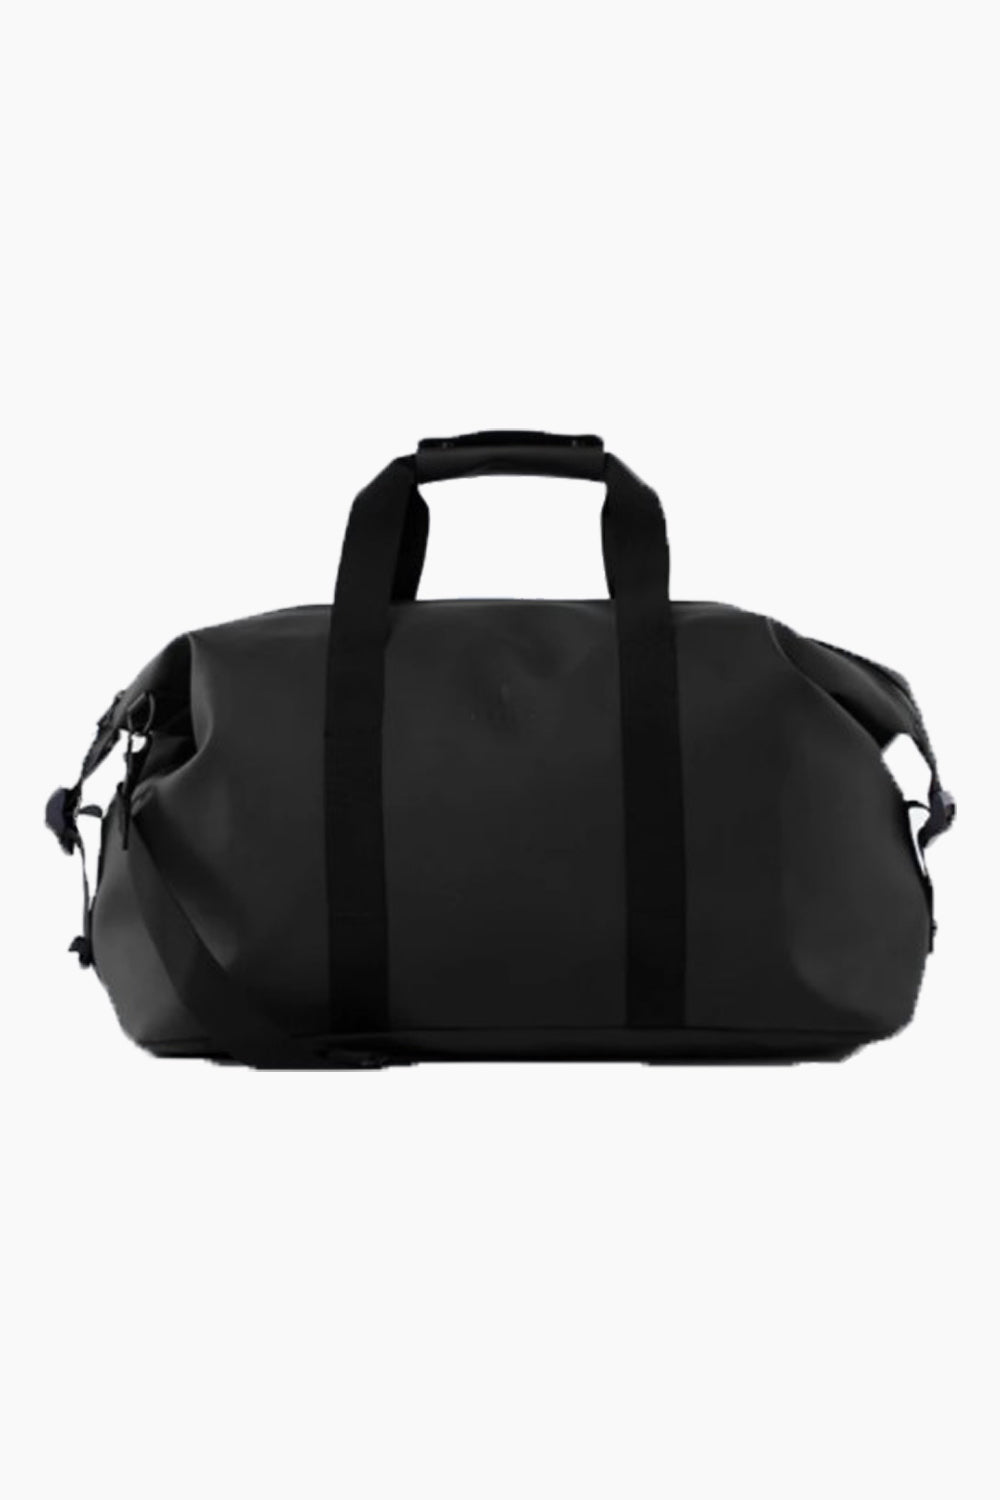 Weekend Bag - Black - Rains - One Size Sort